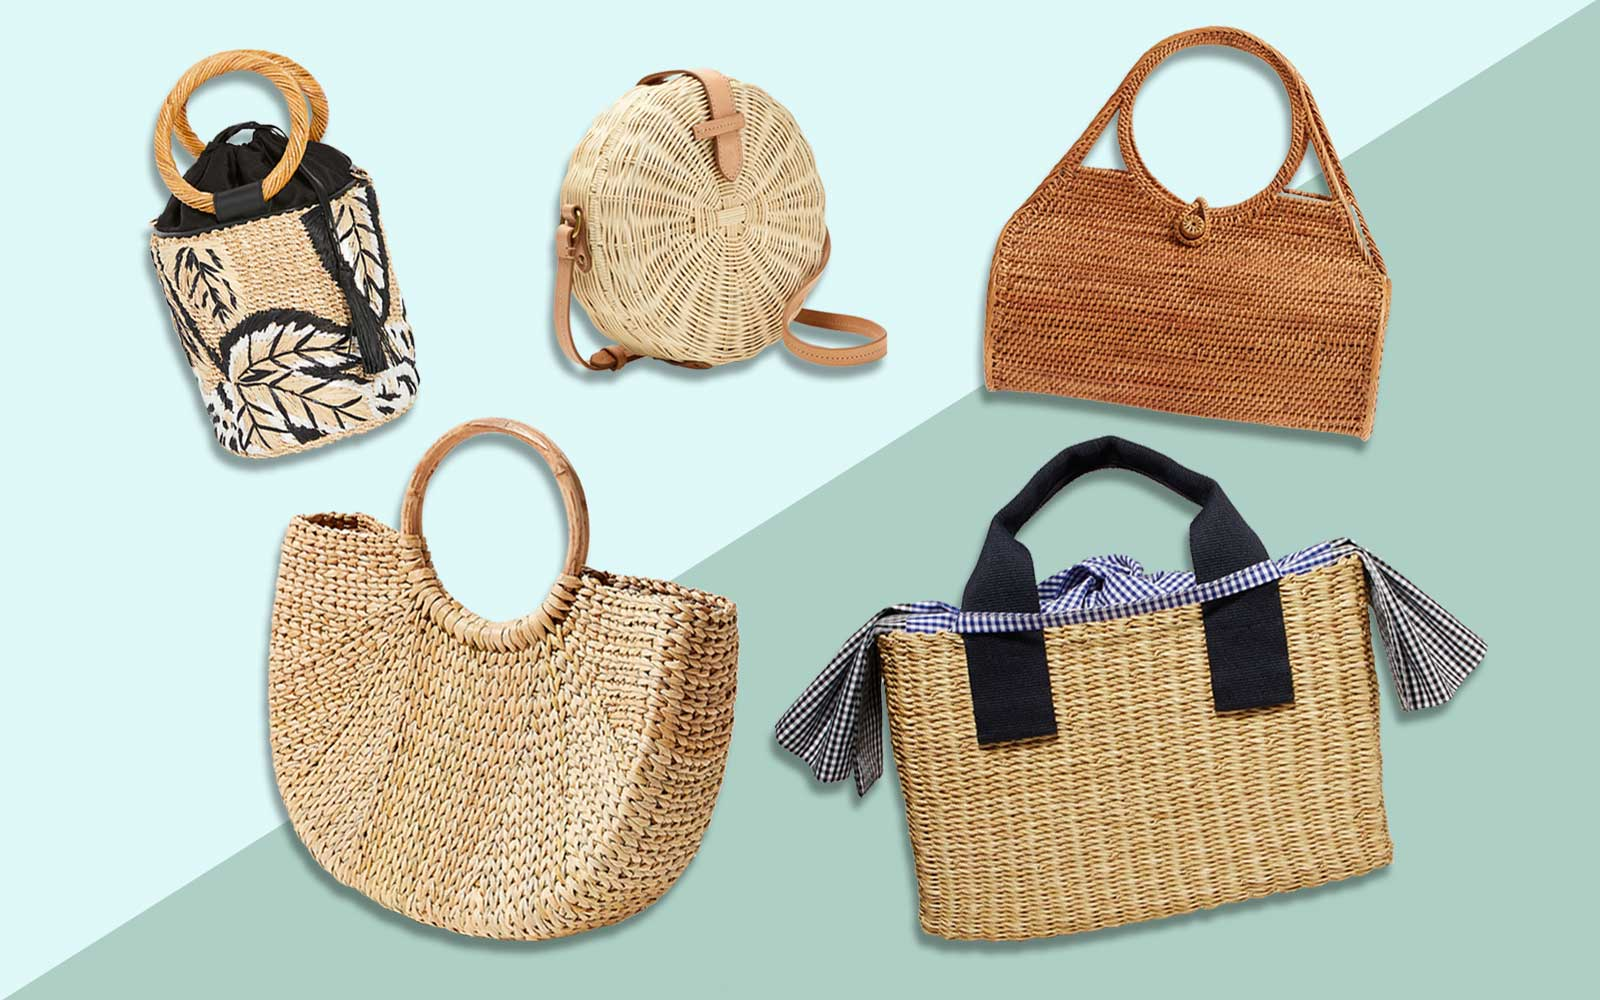 17 Cute Straw Bags - Crossbody, Circle, and More